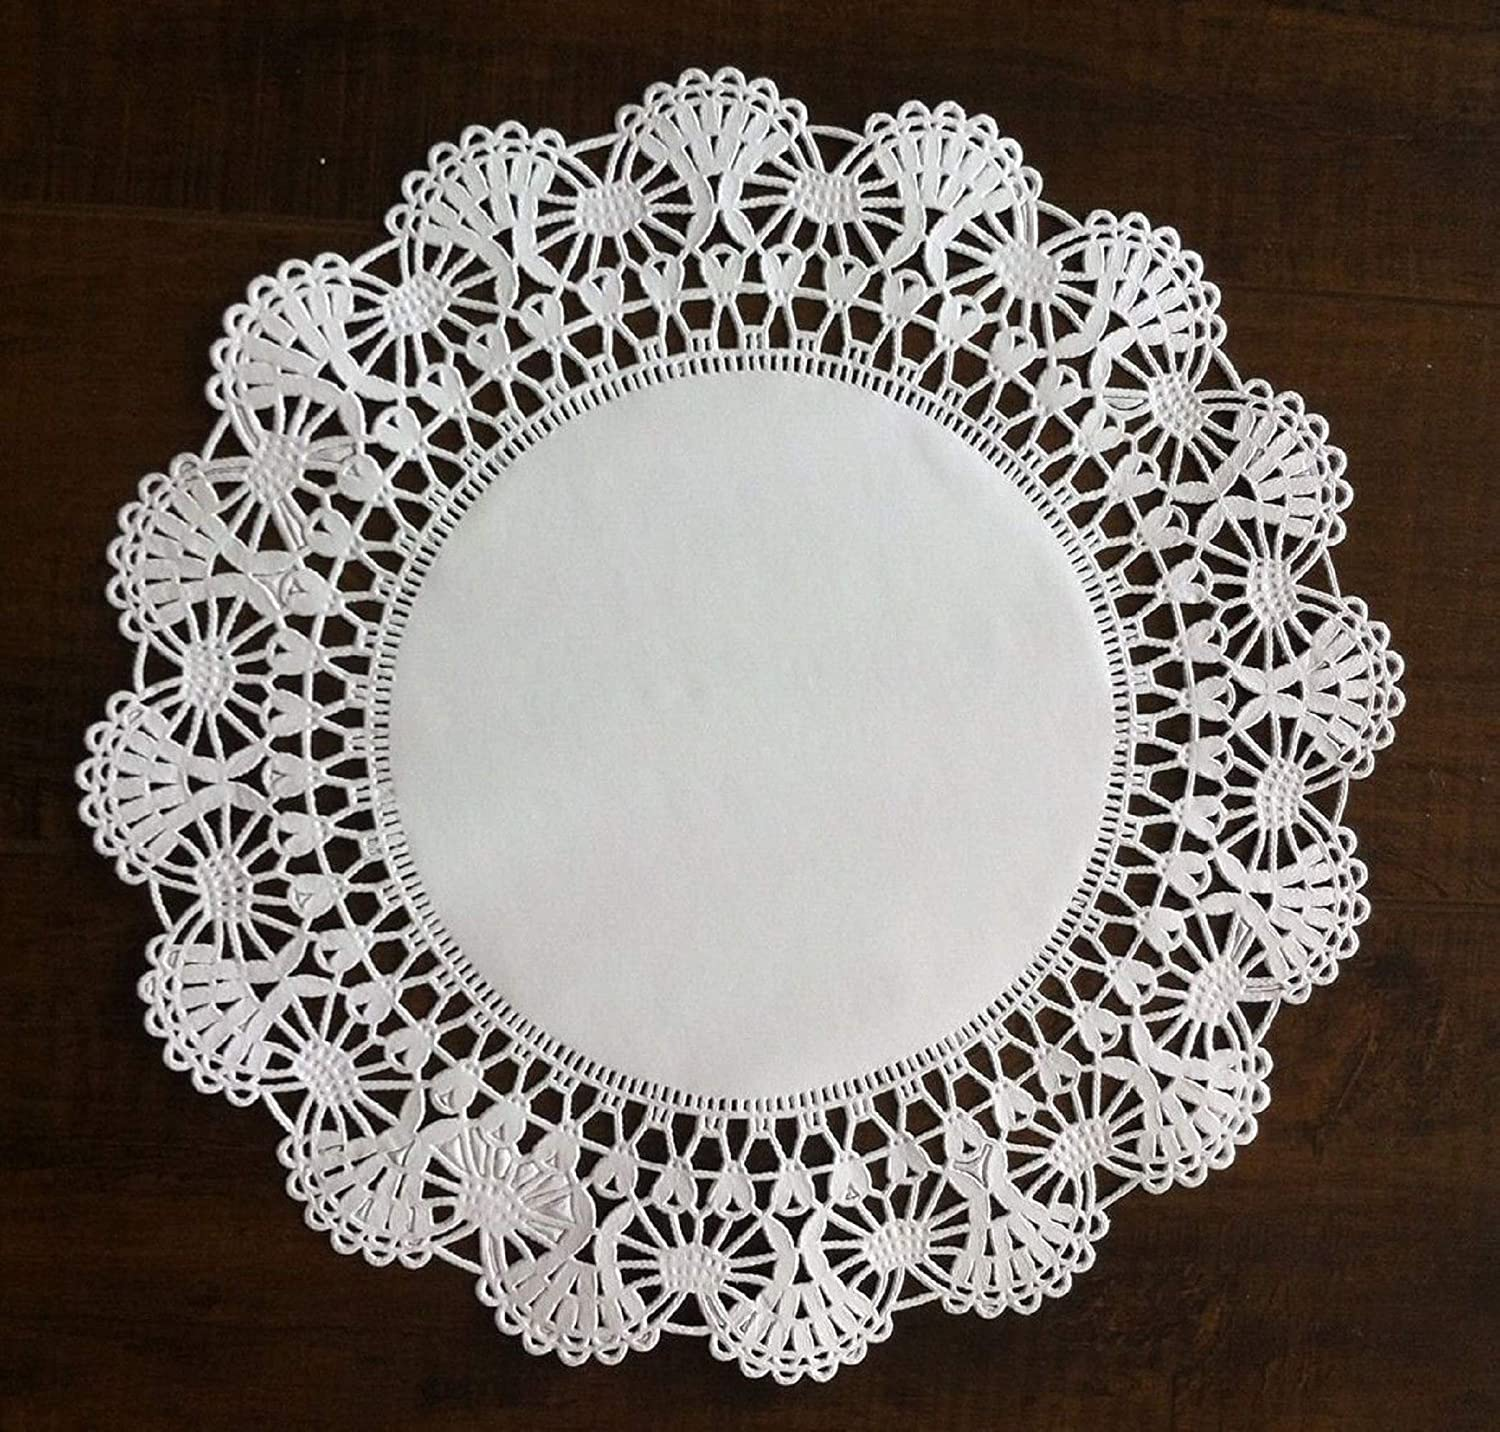 pack of 100 25.4cm The Baker Celebrations 10-inch White Round Paper Lace Doilies